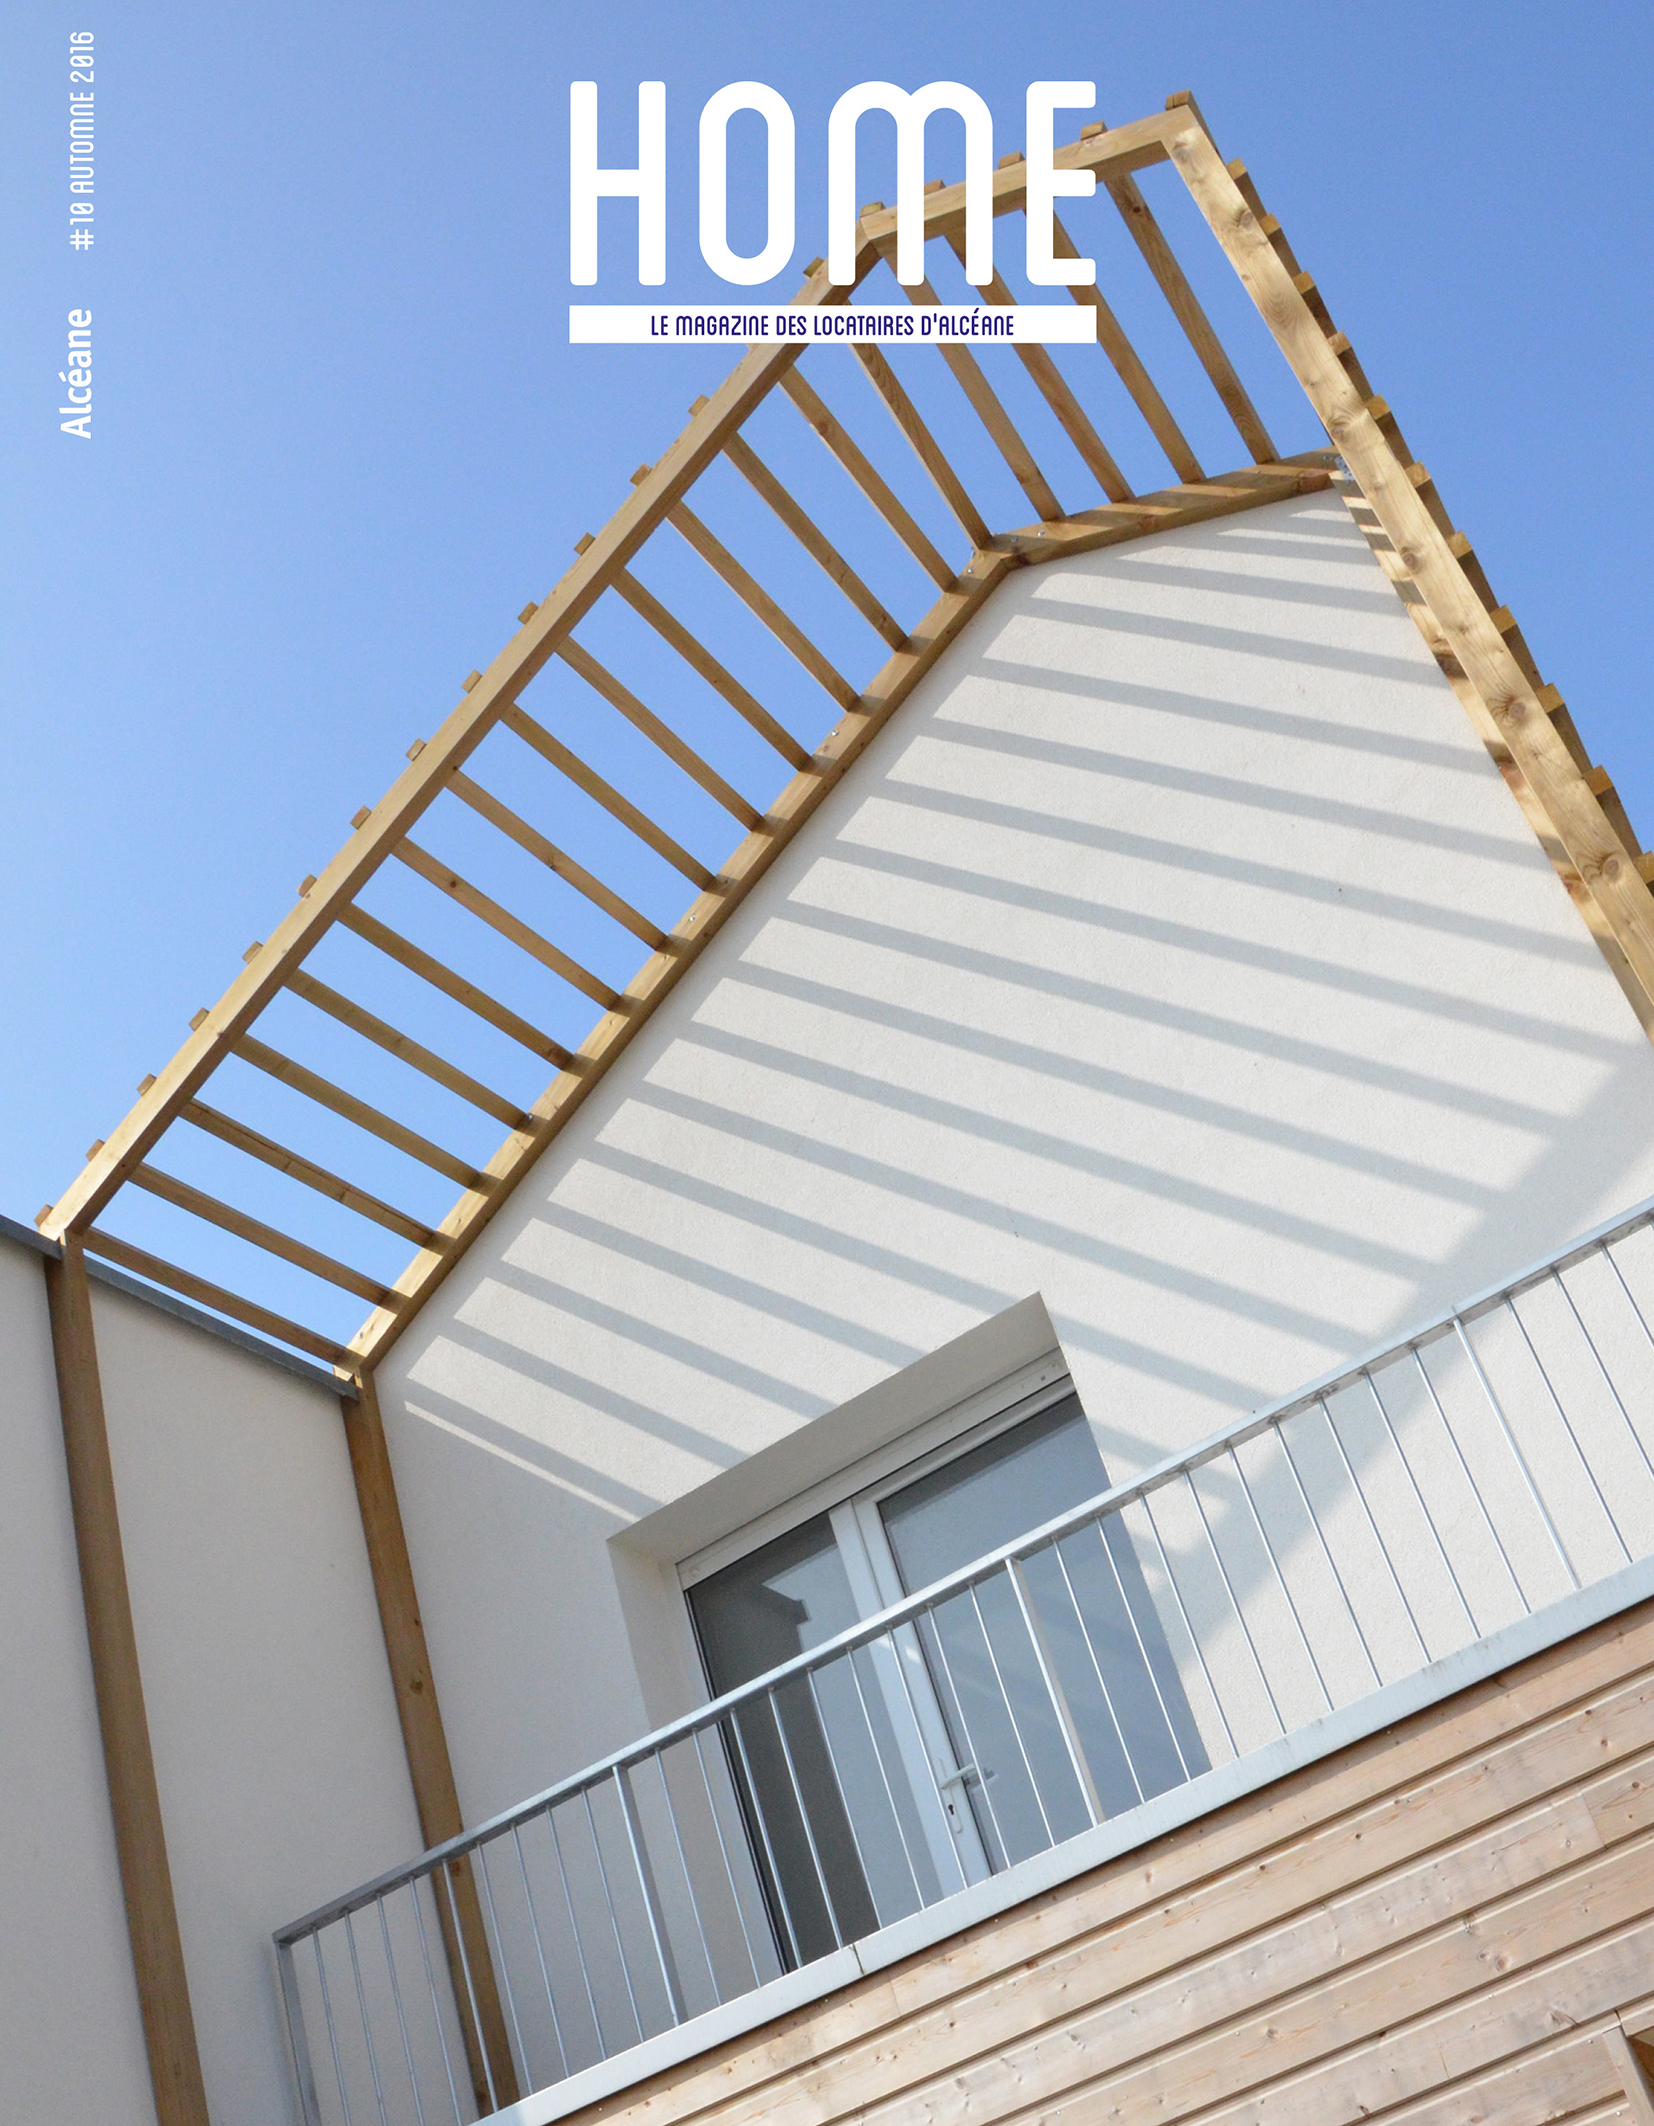 Couverture magazine Home 10